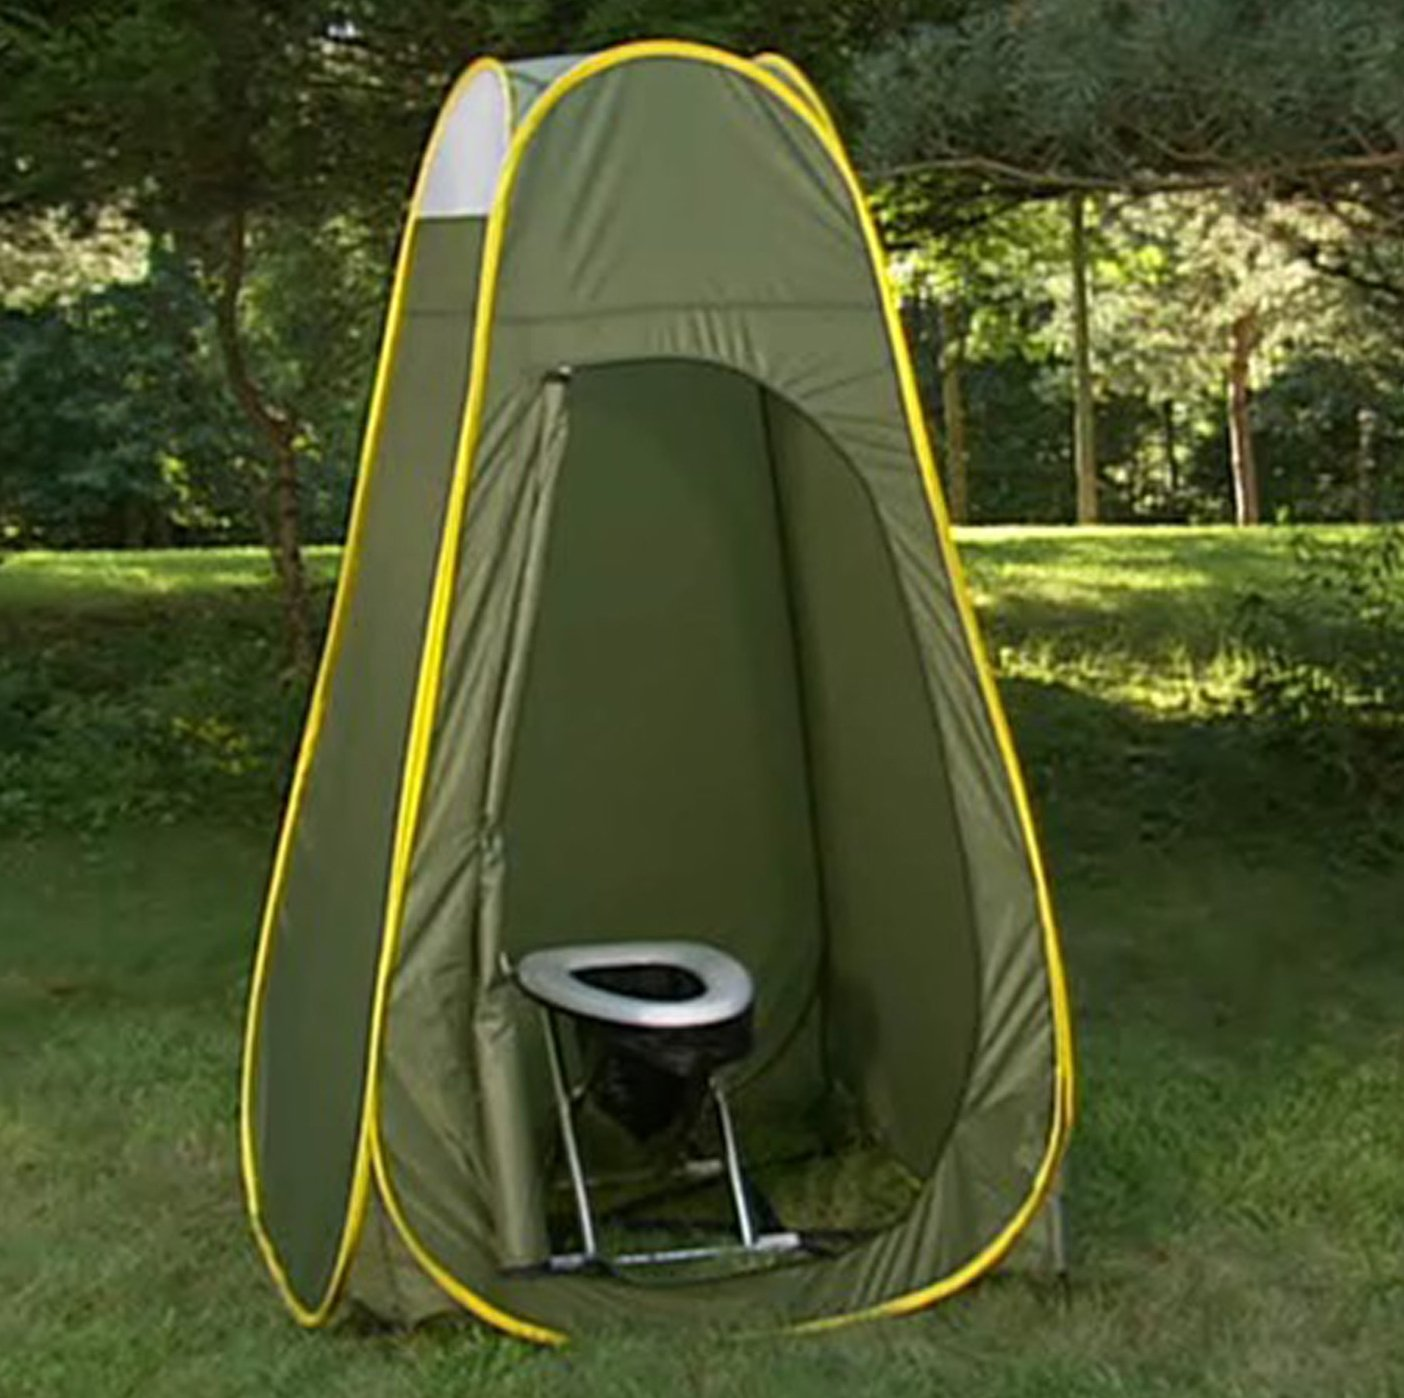 Amazon.com  C&ing Travel Toilet and Privacy Pop-up Complete Package  C&ing Sanitation Supplies  Sports u0026 Outdoors  sc 1 st  Amazon.com & Amazon.com : Camping Travel Toilet and Privacy Pop-up Complete ...